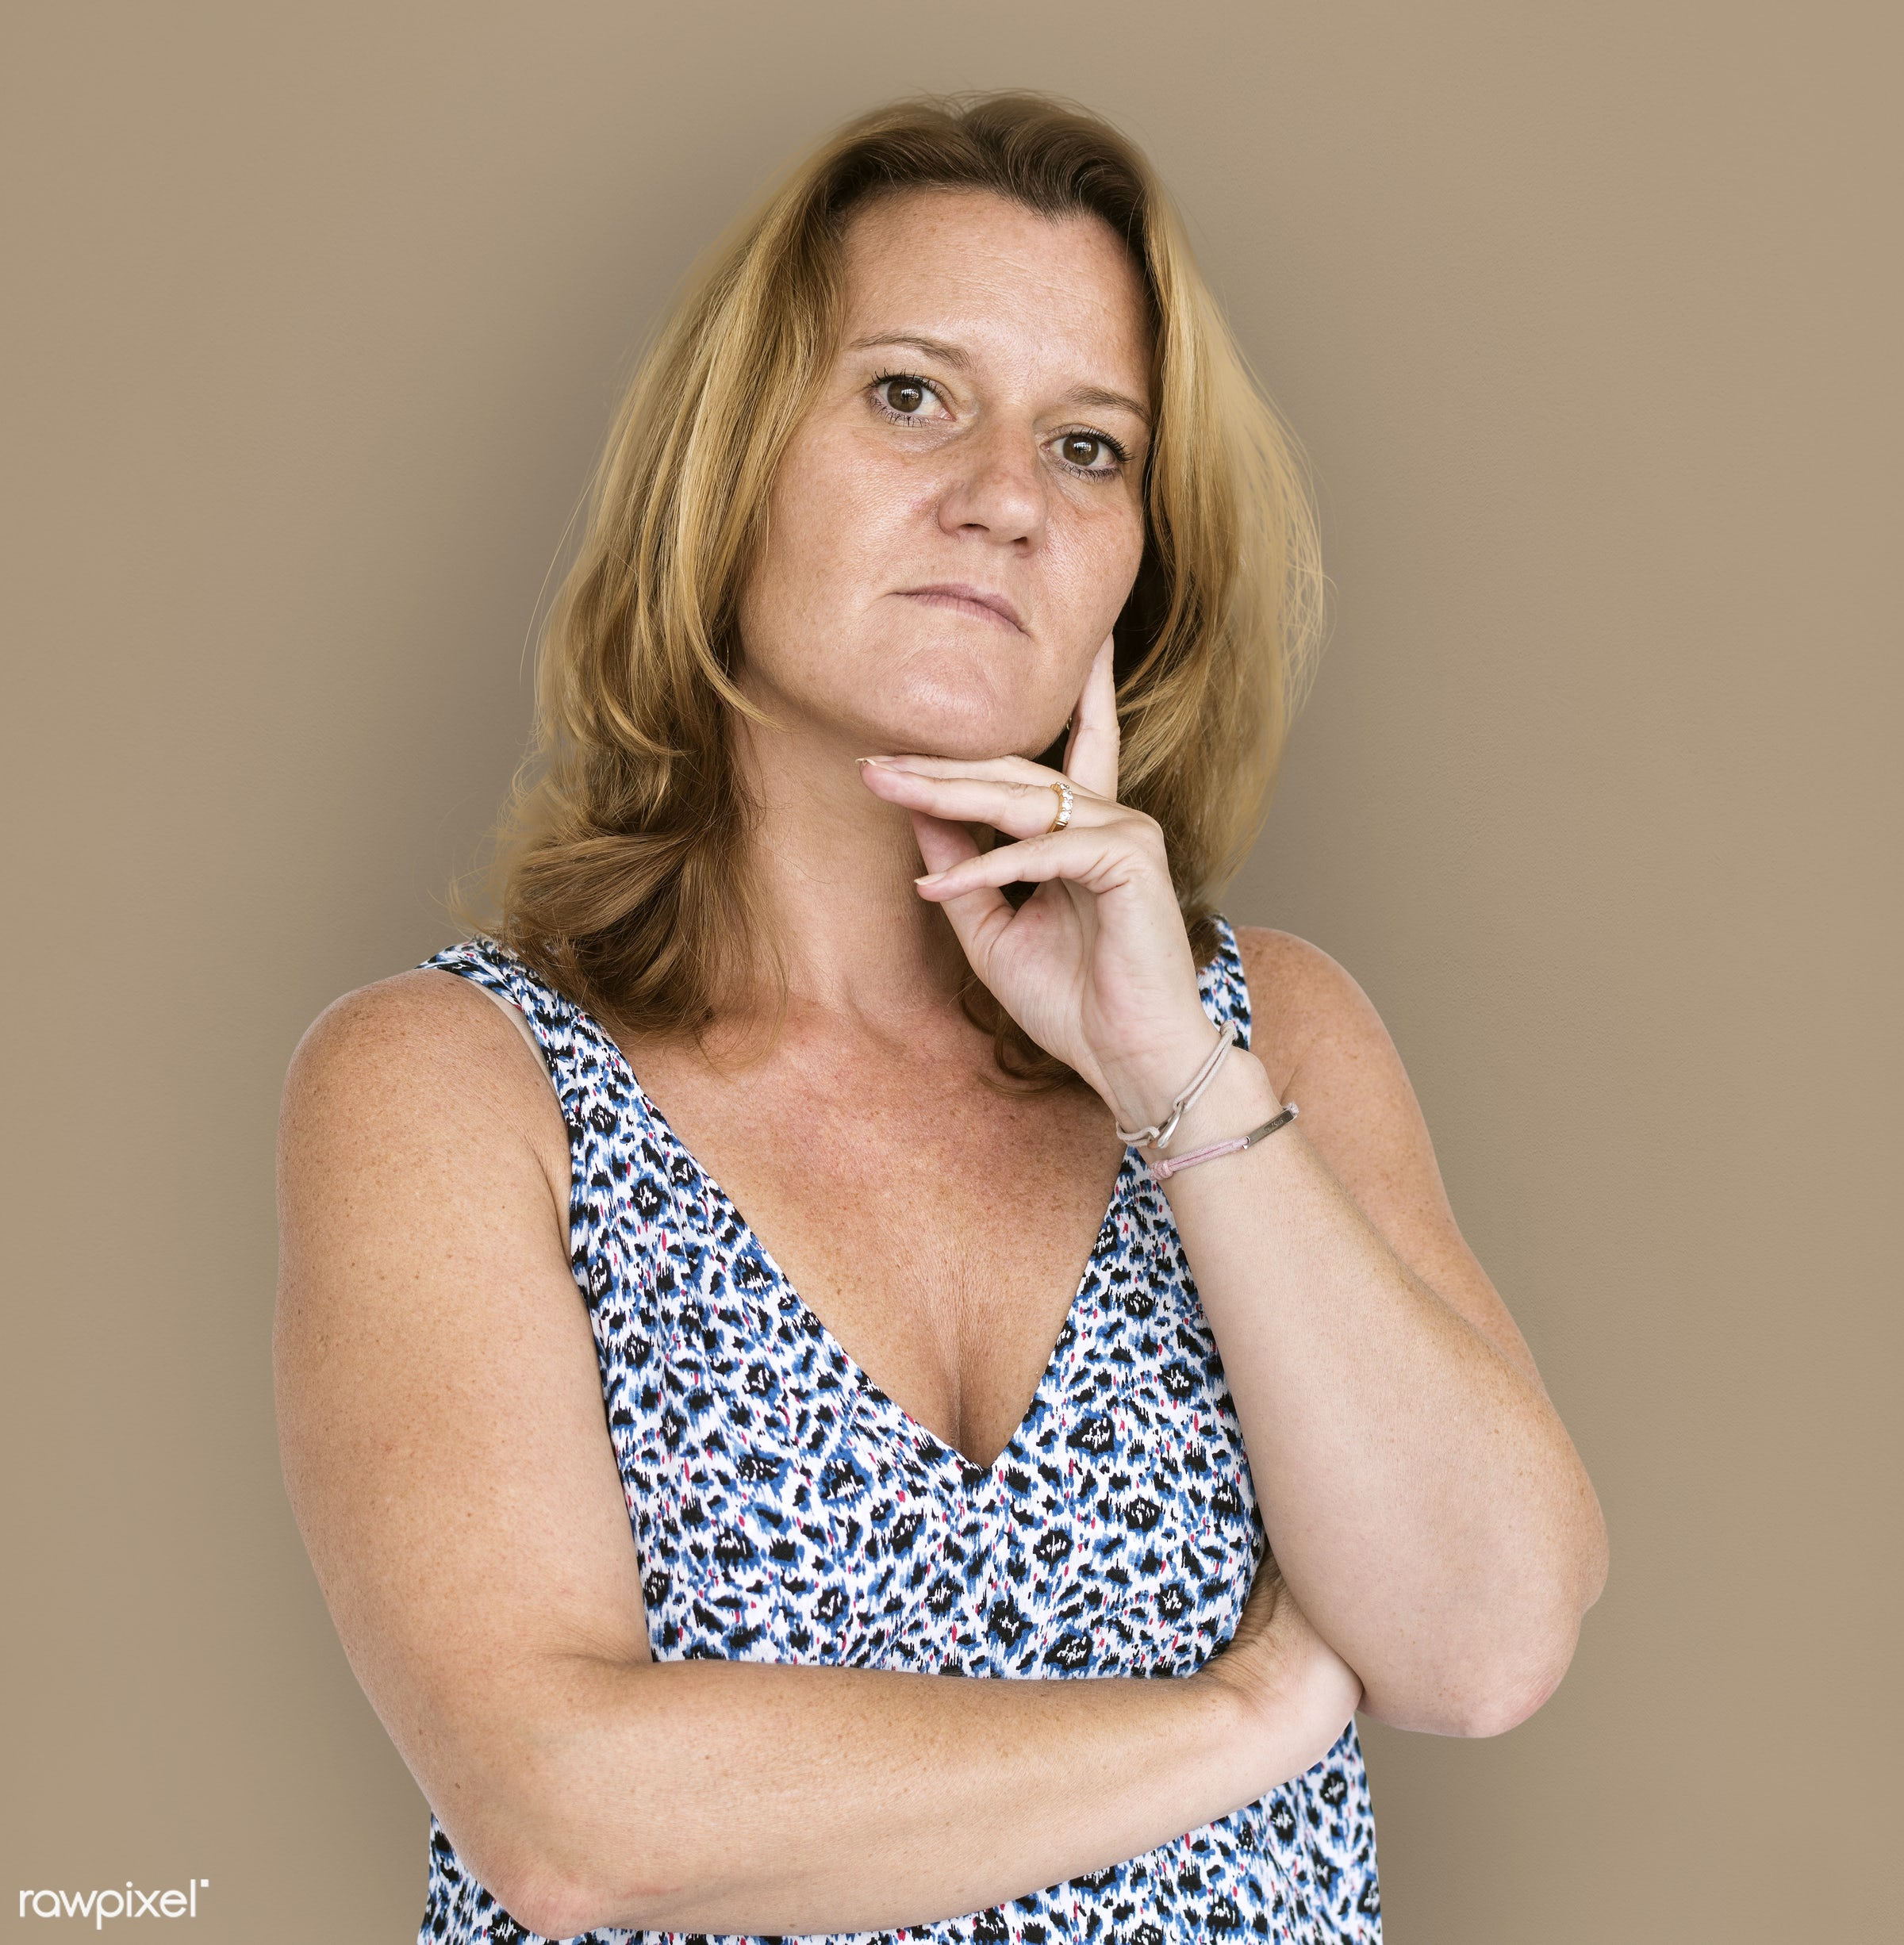 studio, person, people, business, wavy, curious, solo, upset, woman, serious, unhappy, isolated, half-body, adult,...